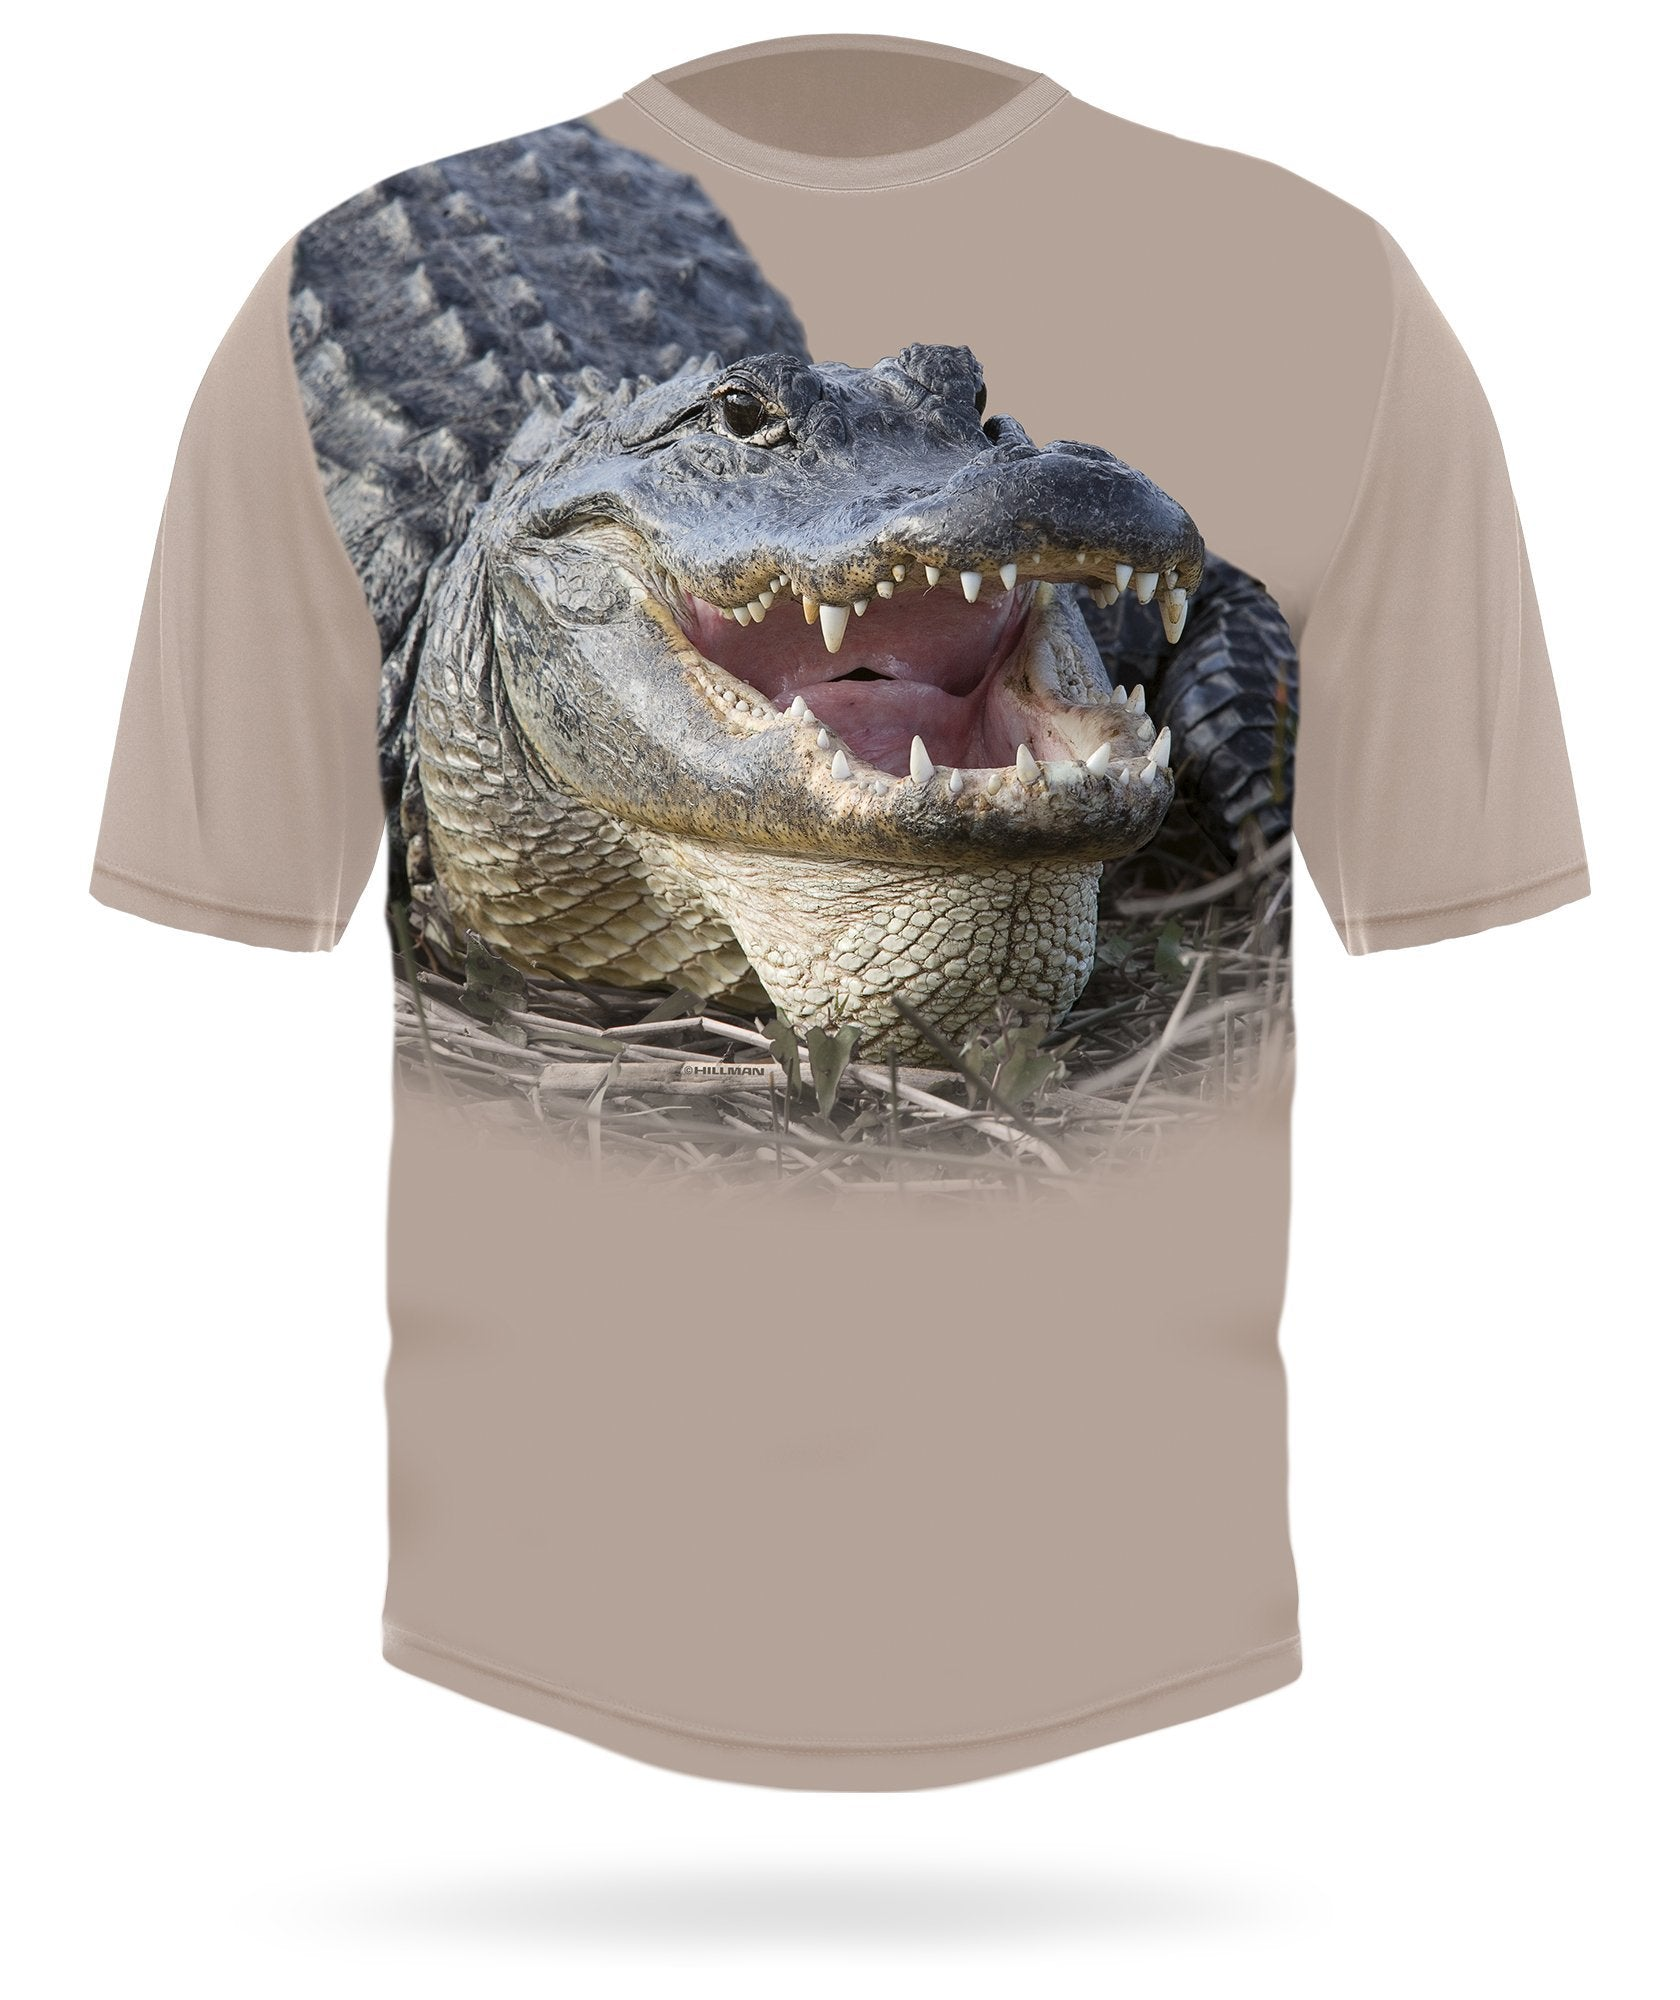 Alligator T-Shirt - Short Sleeve